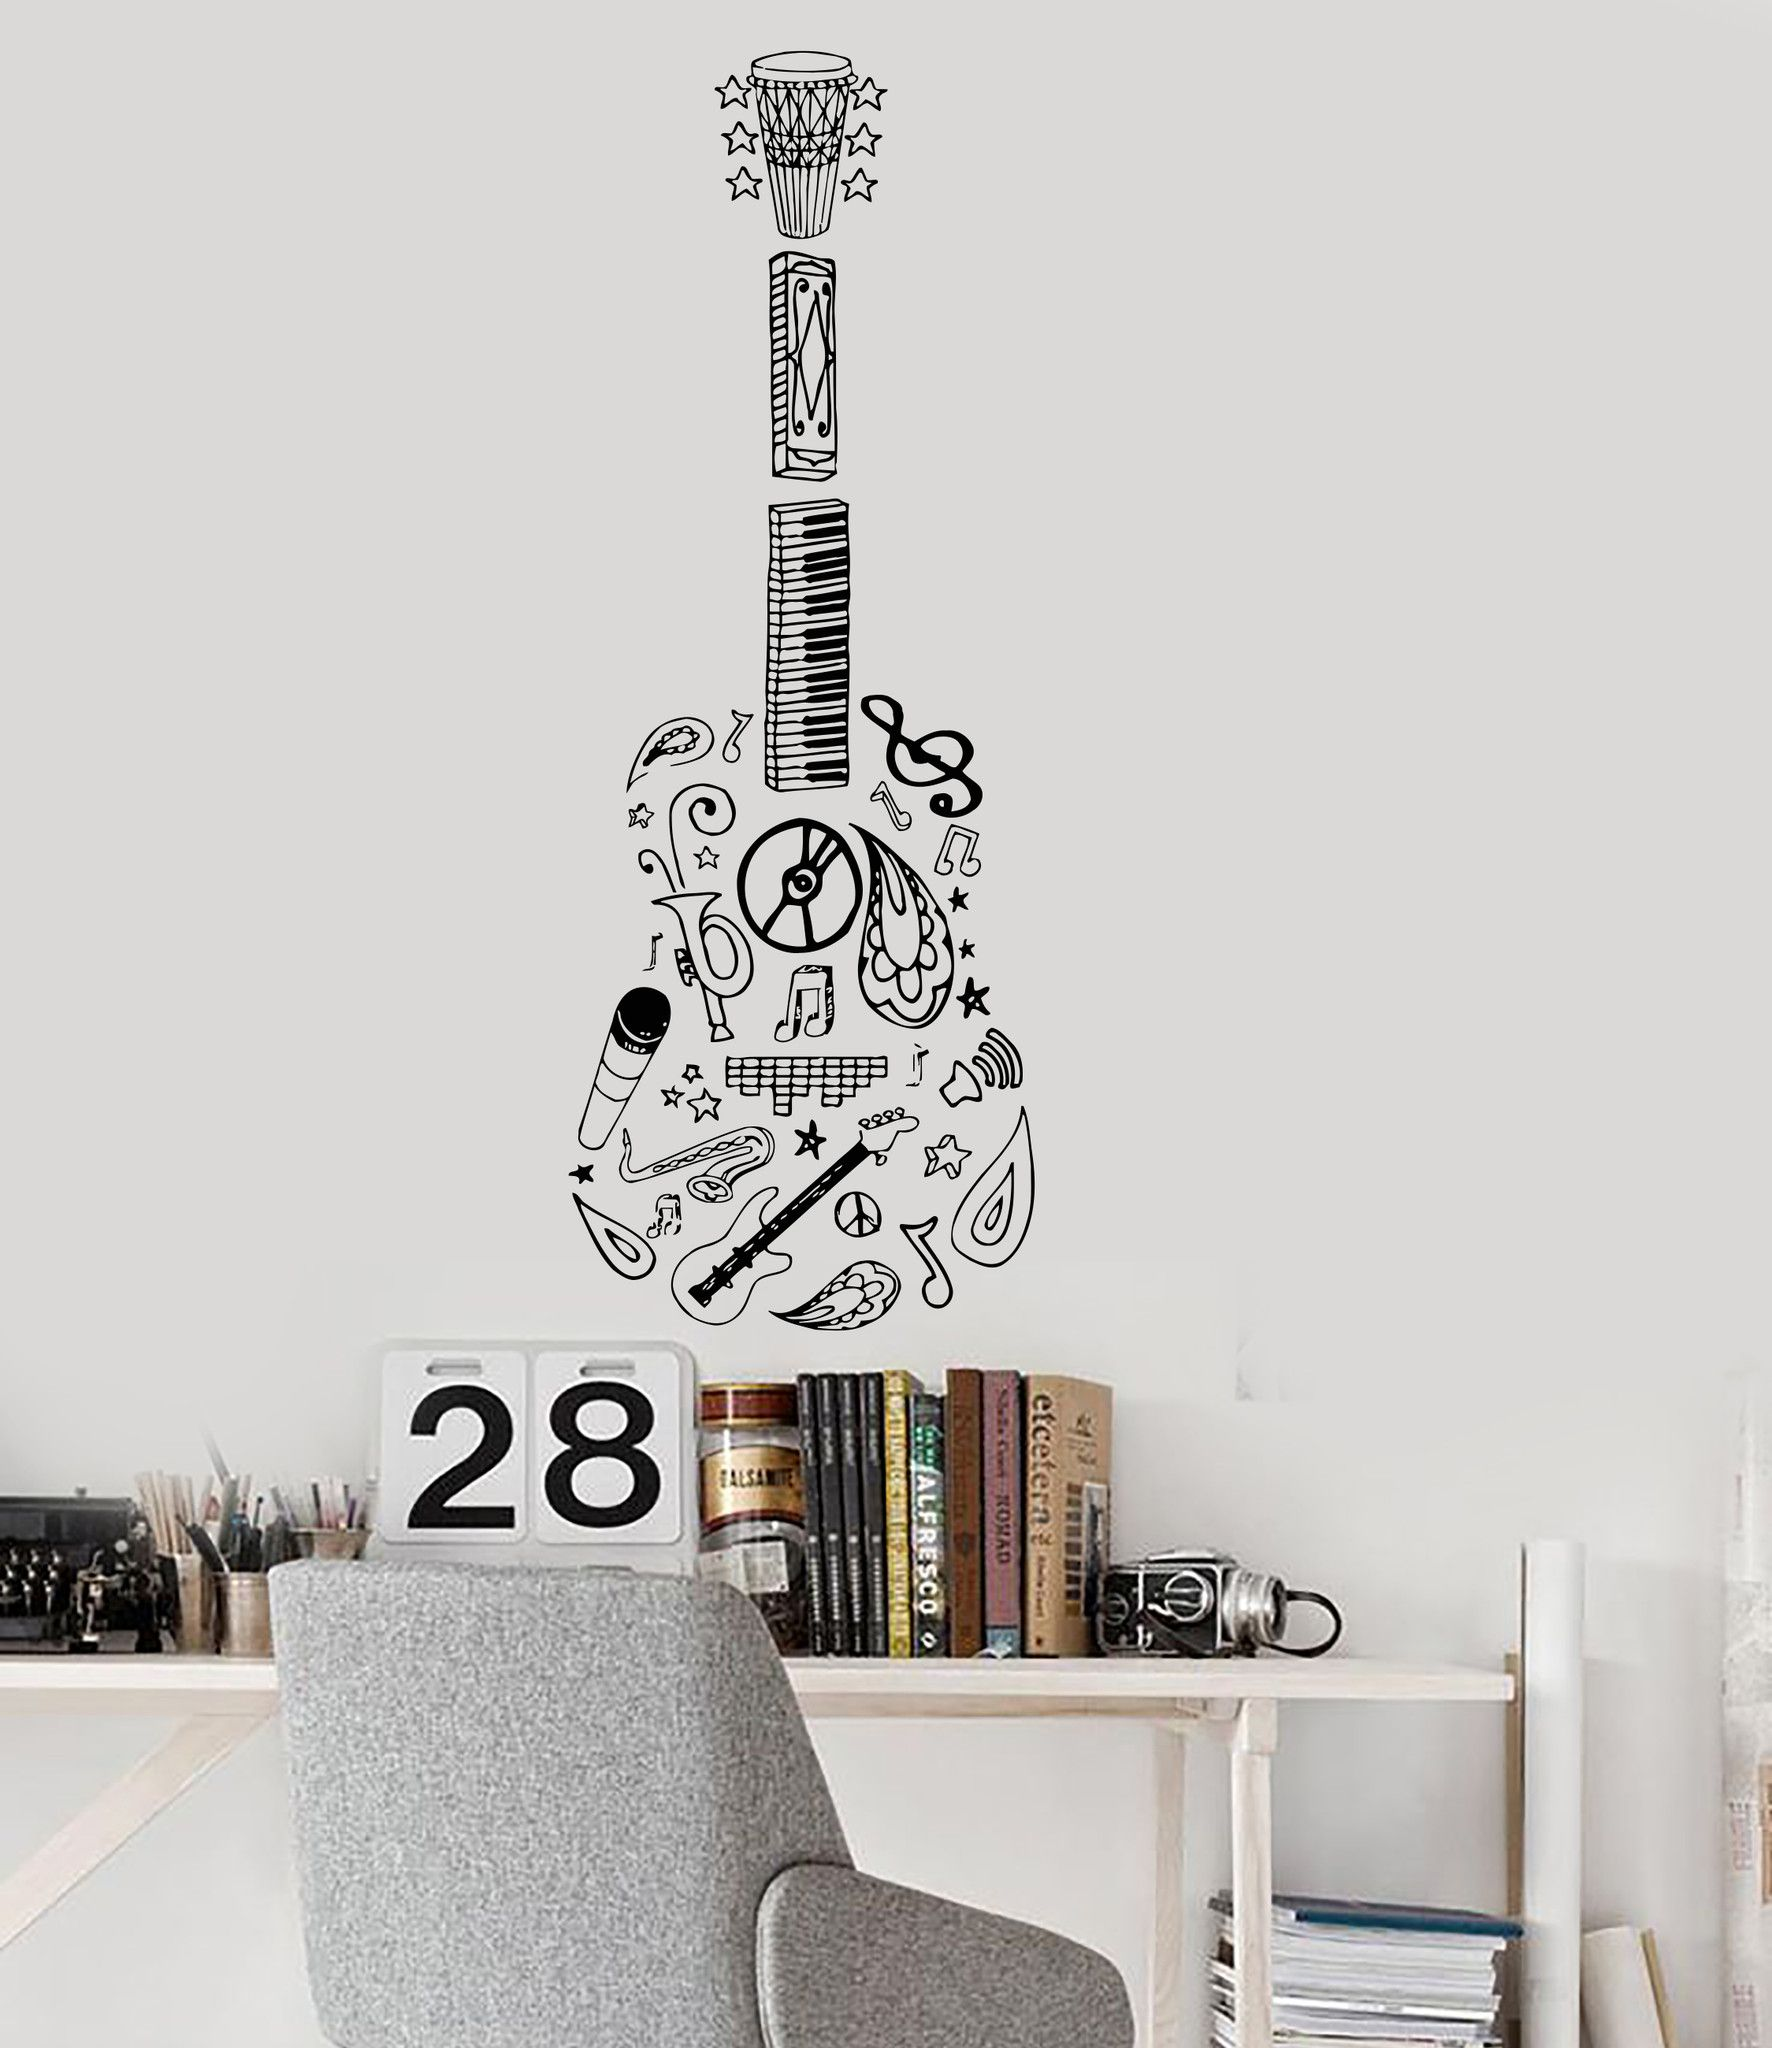 Vinyl Wall Decal Guitar Music Musical Instrument Decor Sketch - Where to get vinyl stickers made